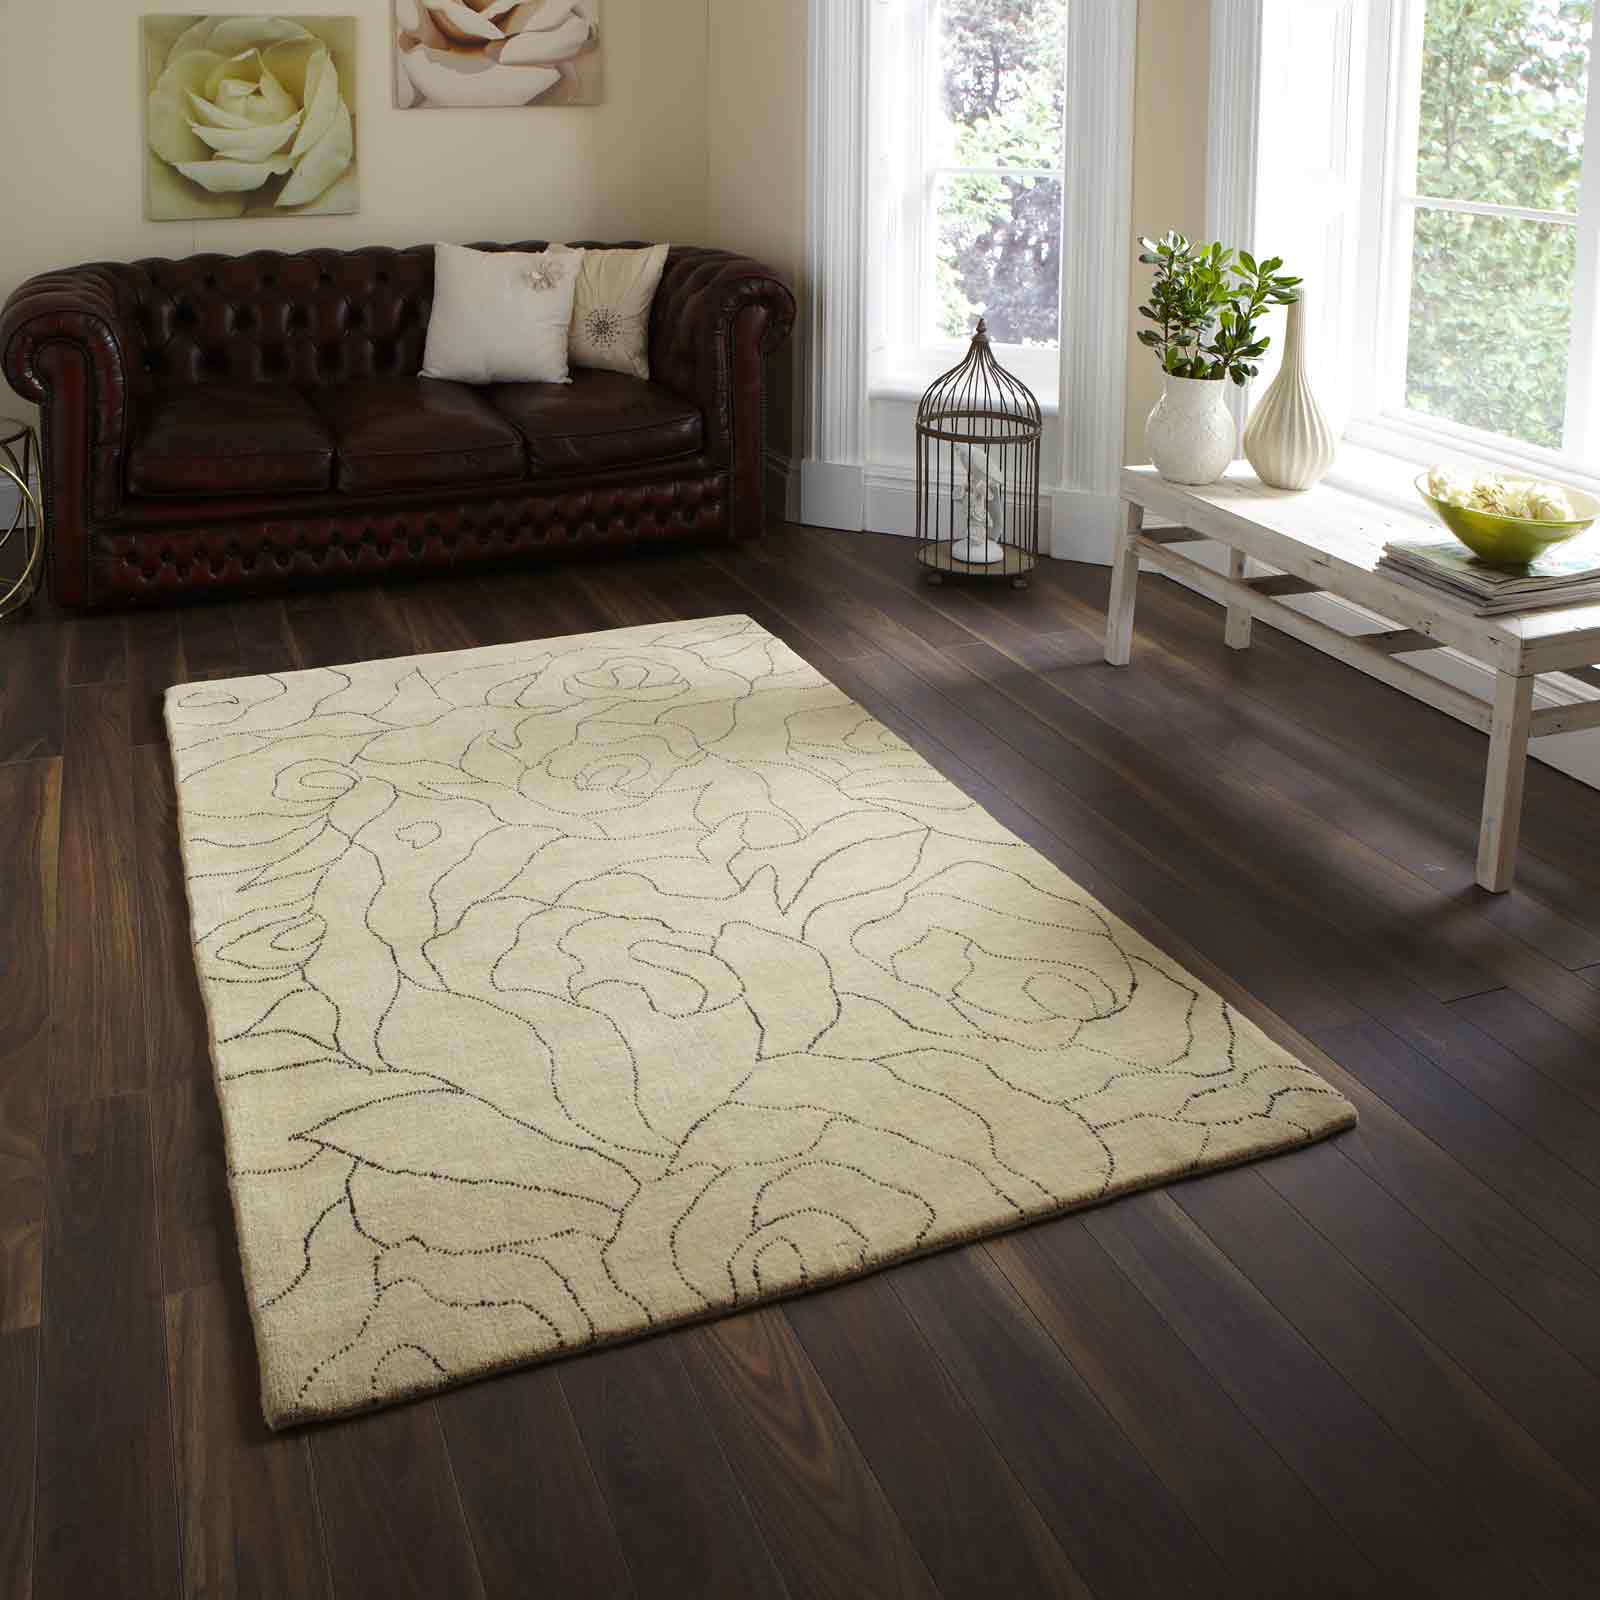 Cambridge Rugs CAM 20 in Natural